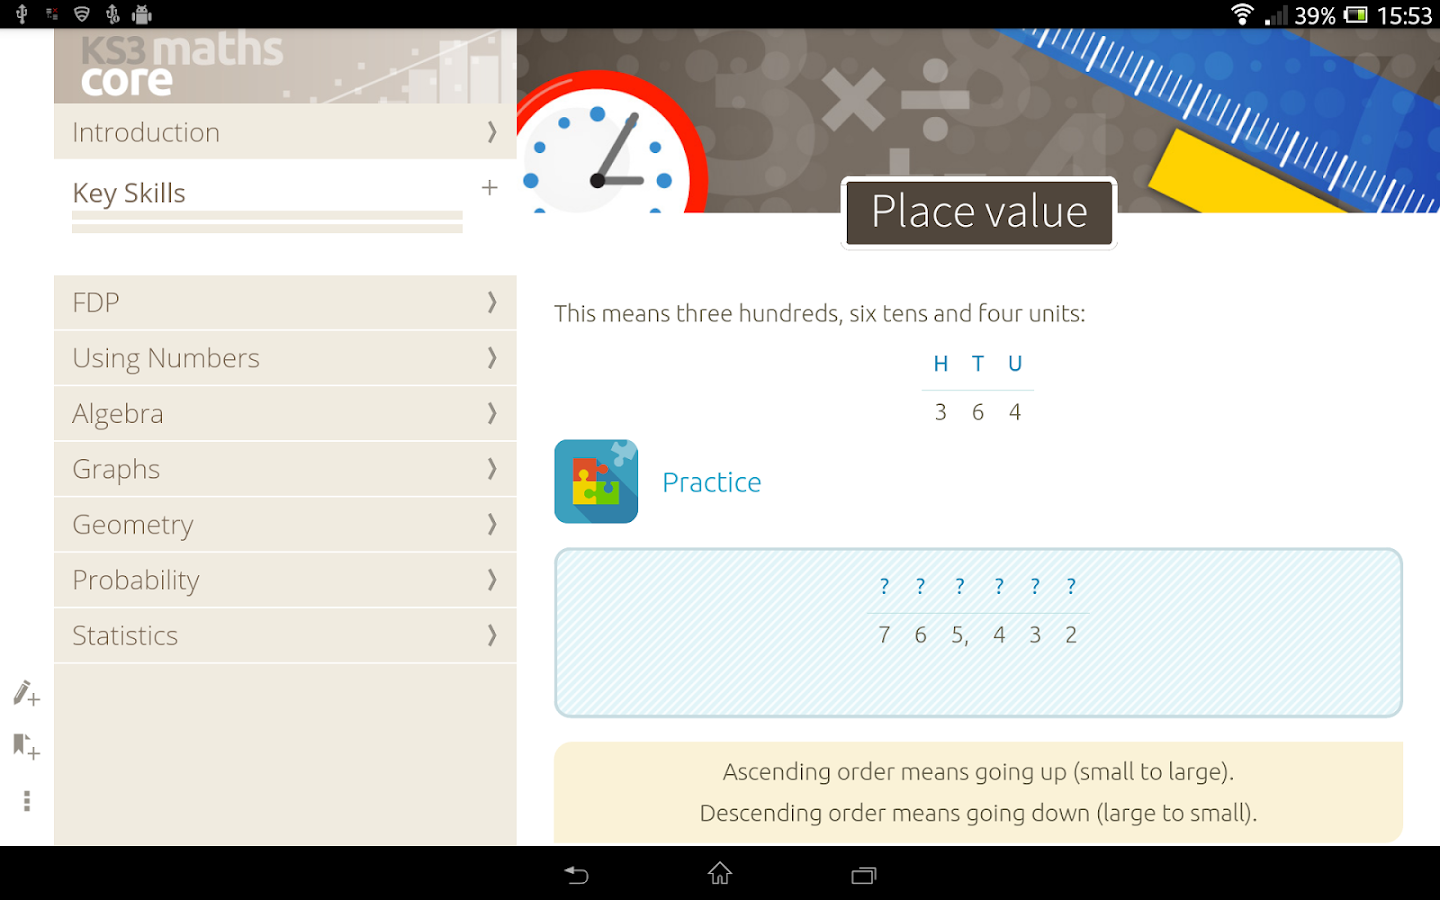 KS3 Maths: Core - nimbl Screenshot 6